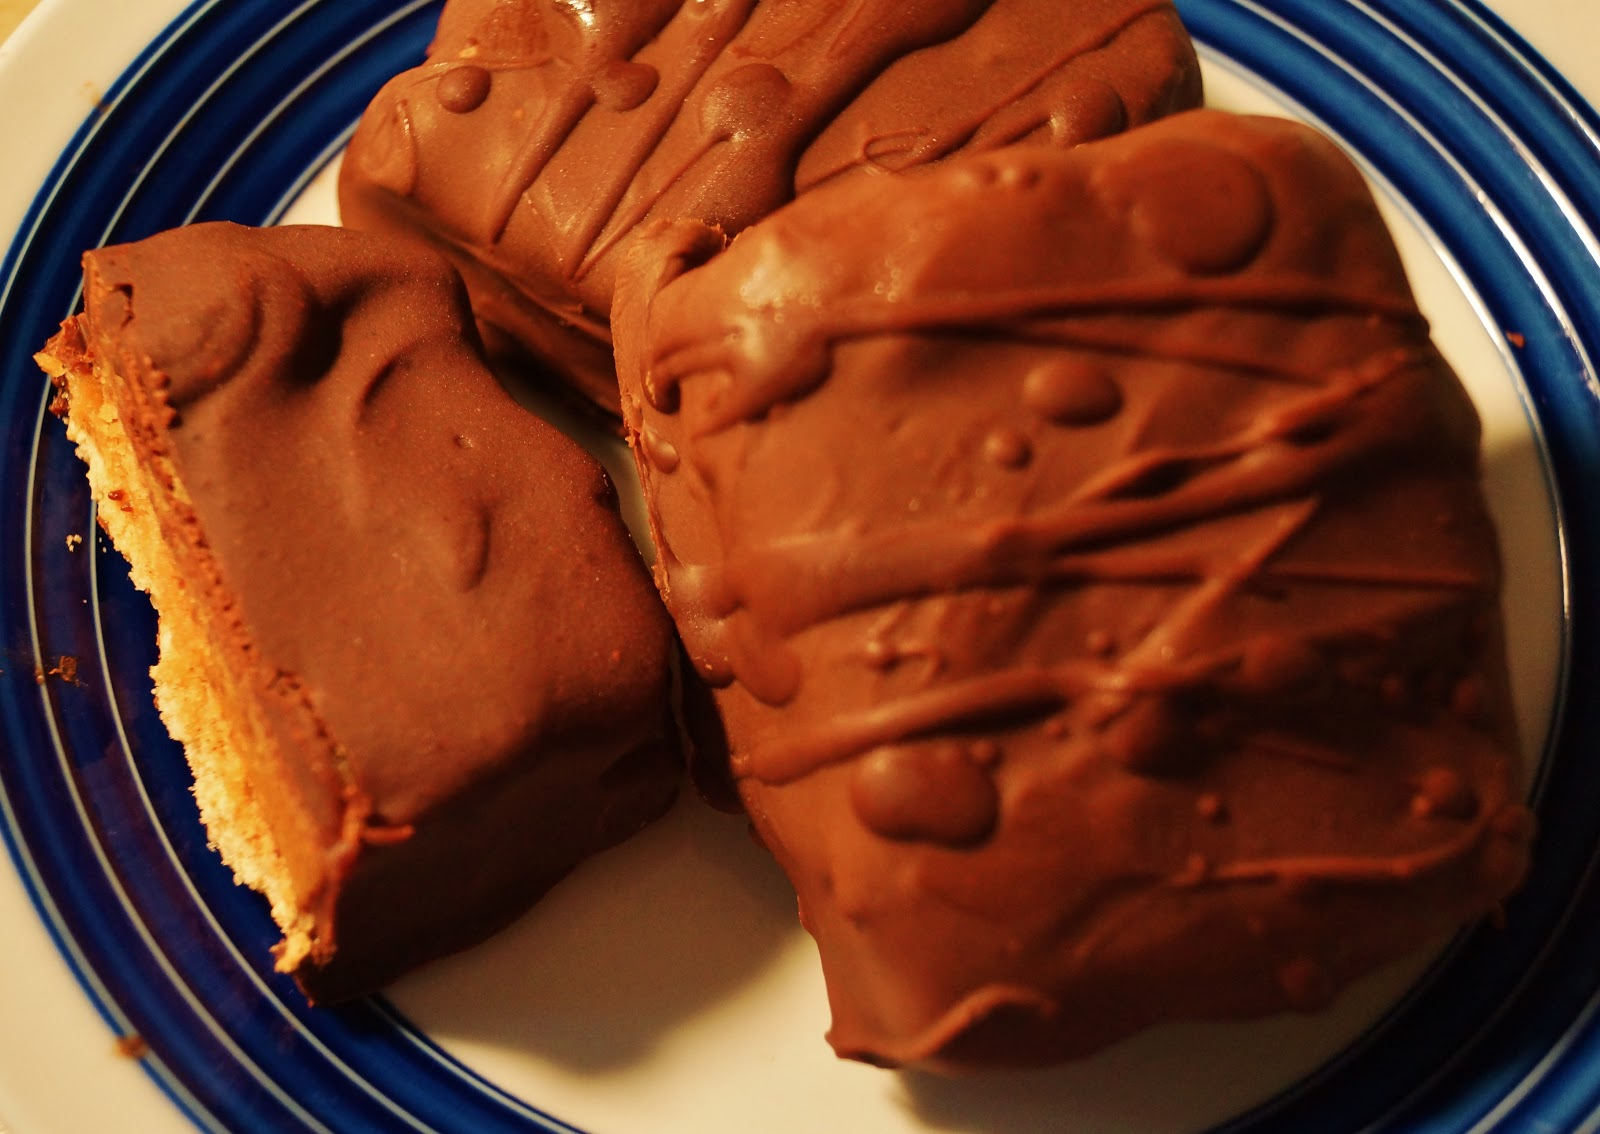 Chocolate Peanut Butter Sandwiches - Main Street Bakery and Starring ...